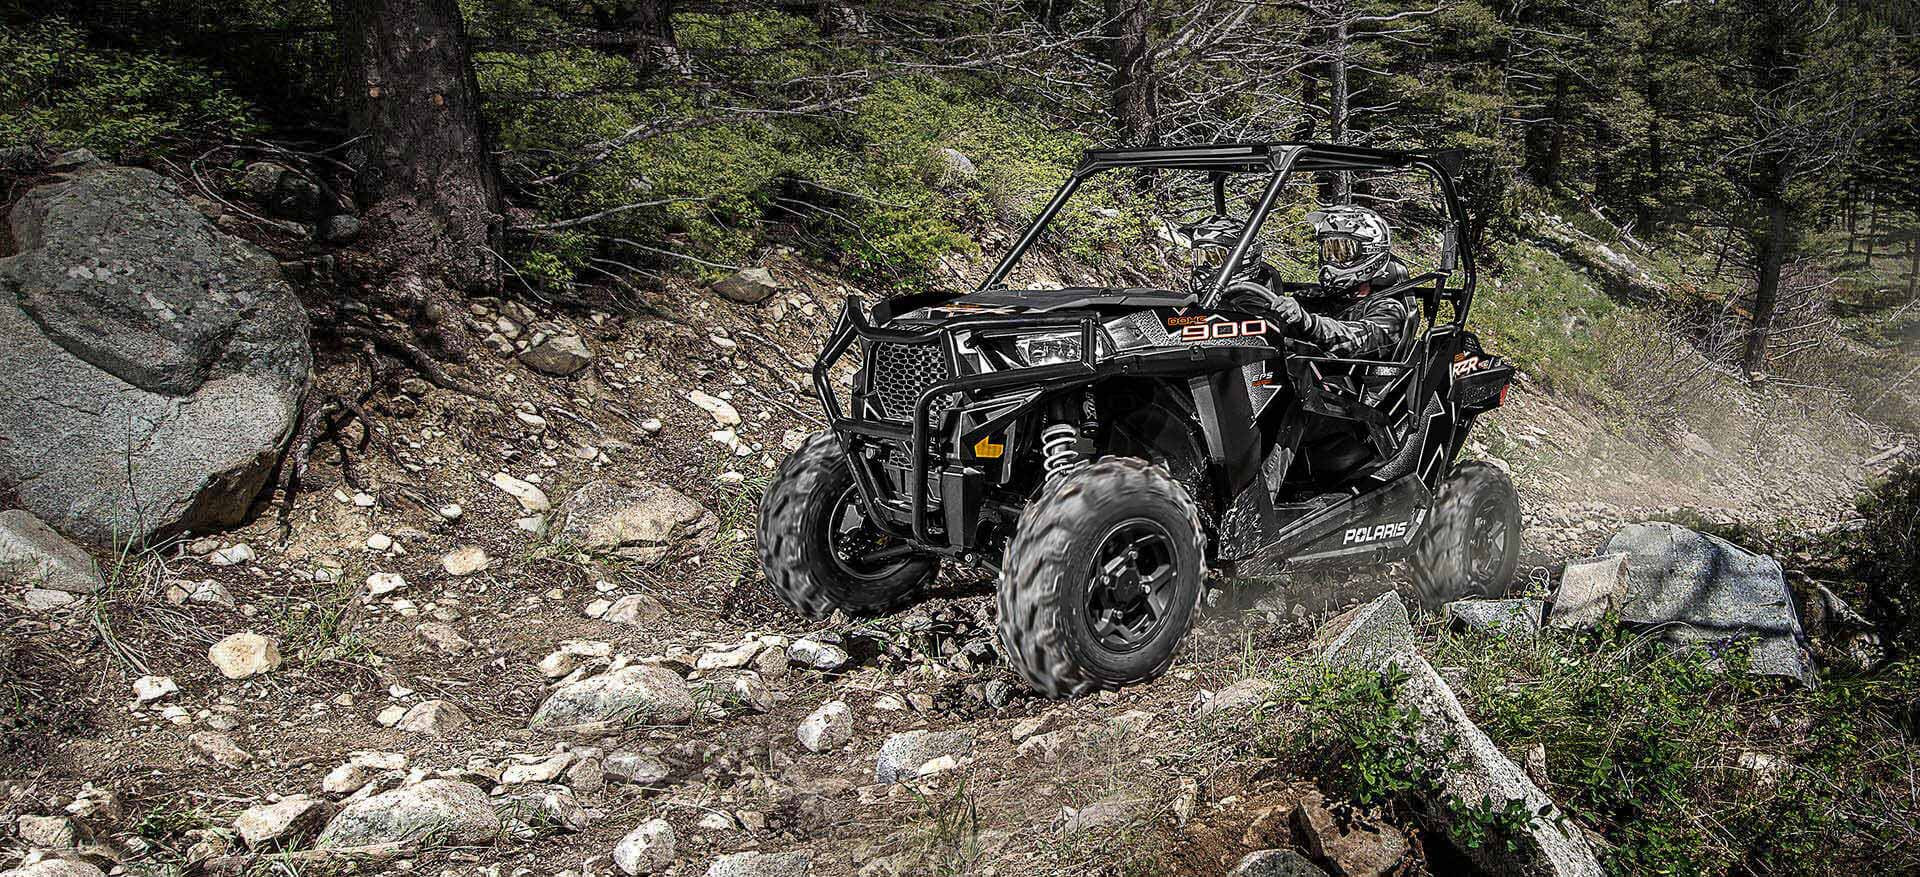 rzr-900-media-location-1-lg